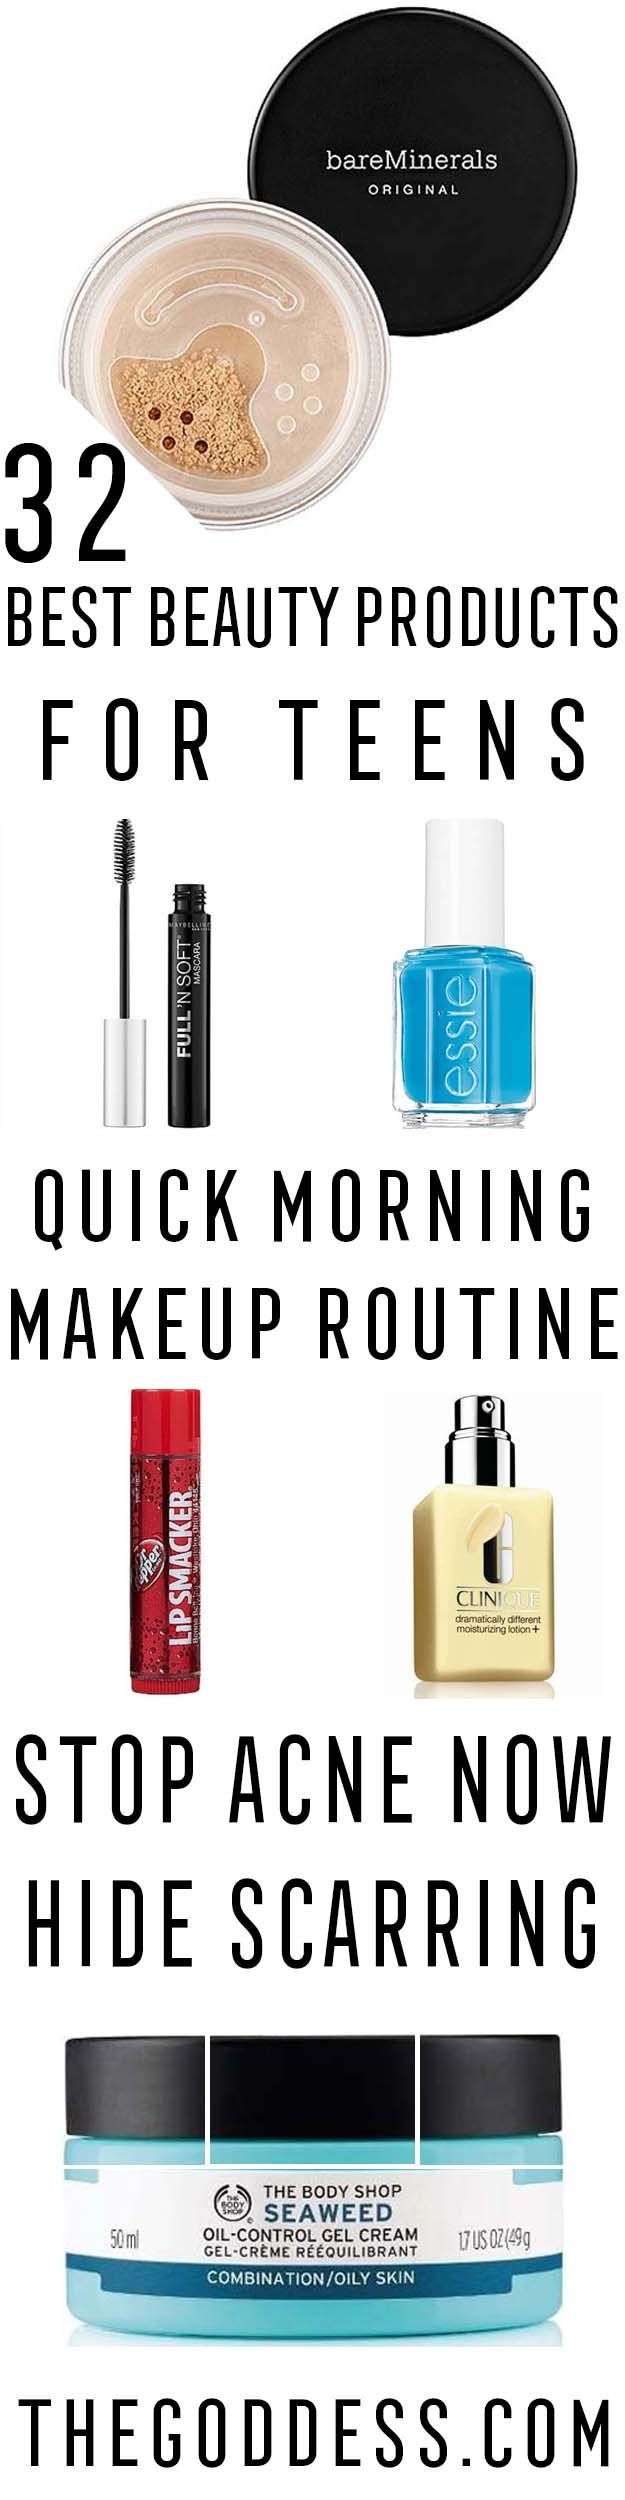 Best Beauty Products For Teens - Teen Beauty Essentials and The Best Products Ever. Skin Clearing Products and Skincare Products That Make Great Beauty Gift Ideas For Teens and Tweens. Skin Care and Makeup Gift Ideas and Shops As Well As Tips and DIY Tutorials For Face Masks, Simple Style Tricks and Even Some Lip Balm and Makeup Products That Teens Love. https://thegoddess.com/beauty-products-teens